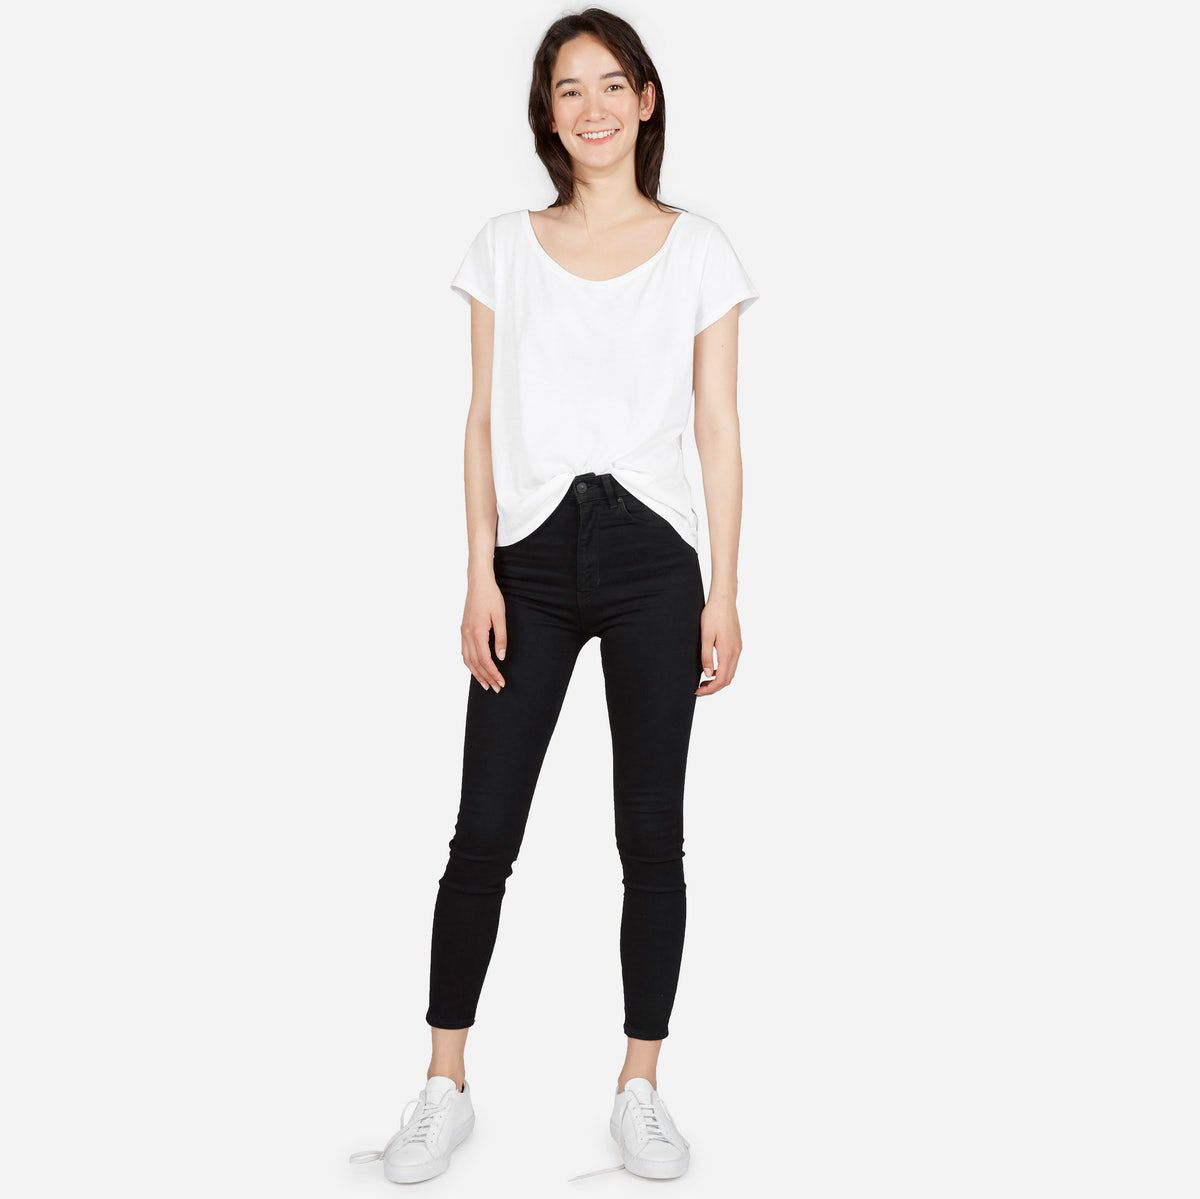 A model in a white T-shirt and black jeans